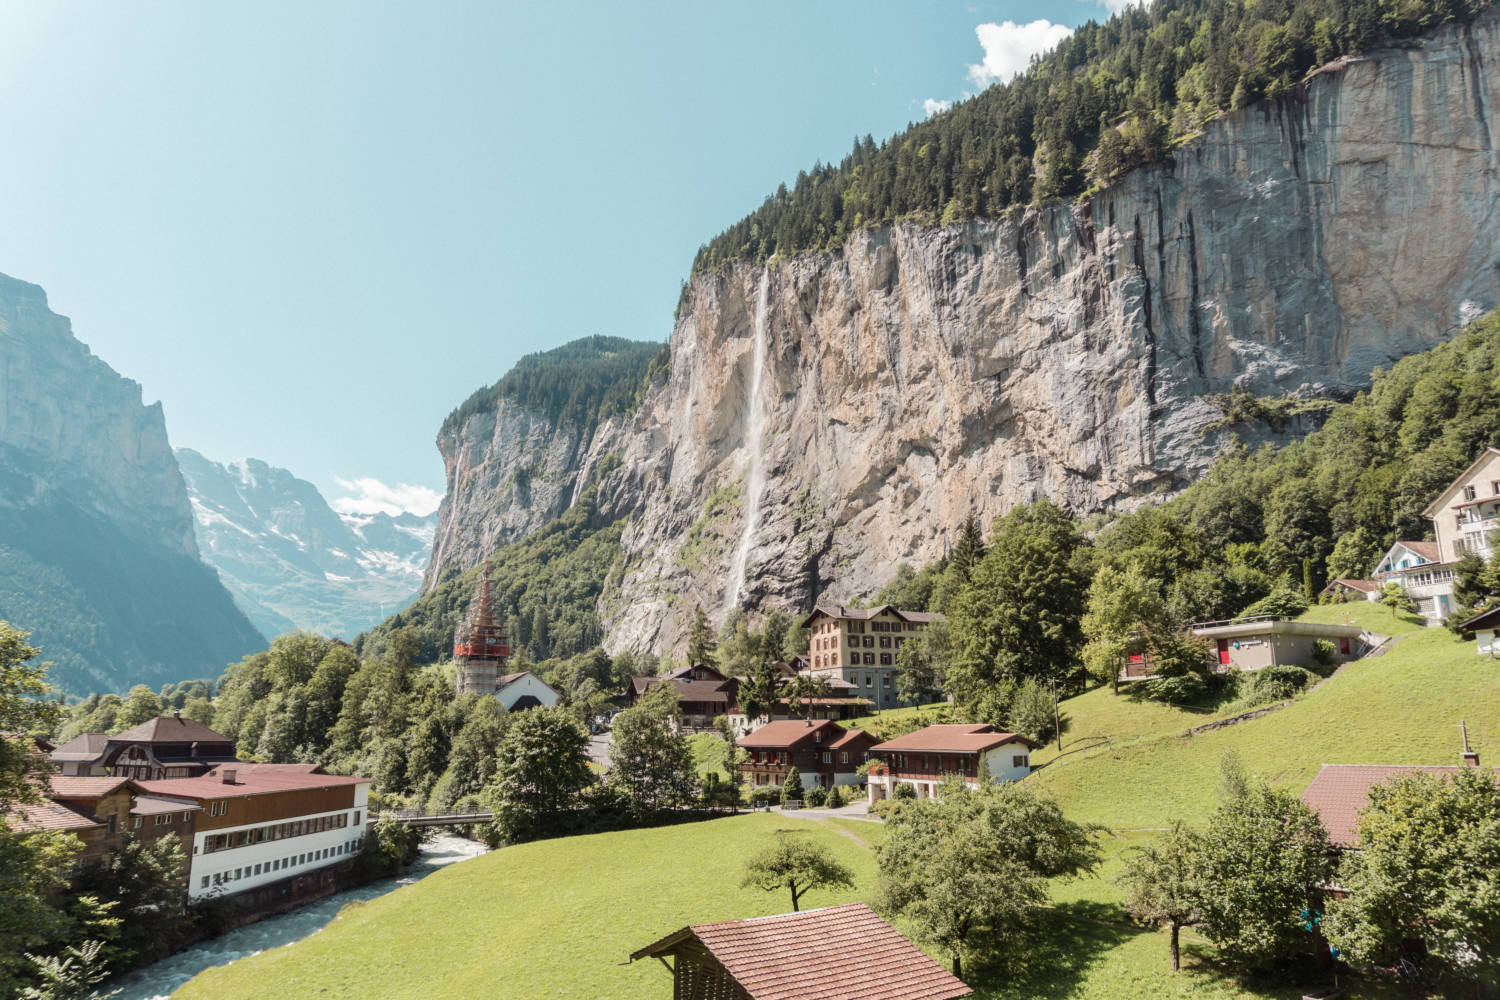 Lauterbrunnen - The Ultimate Switzerland Travel Guide: How To See The Best Of The Jungfrau Region by Amy Marietta - luxury travel blogger